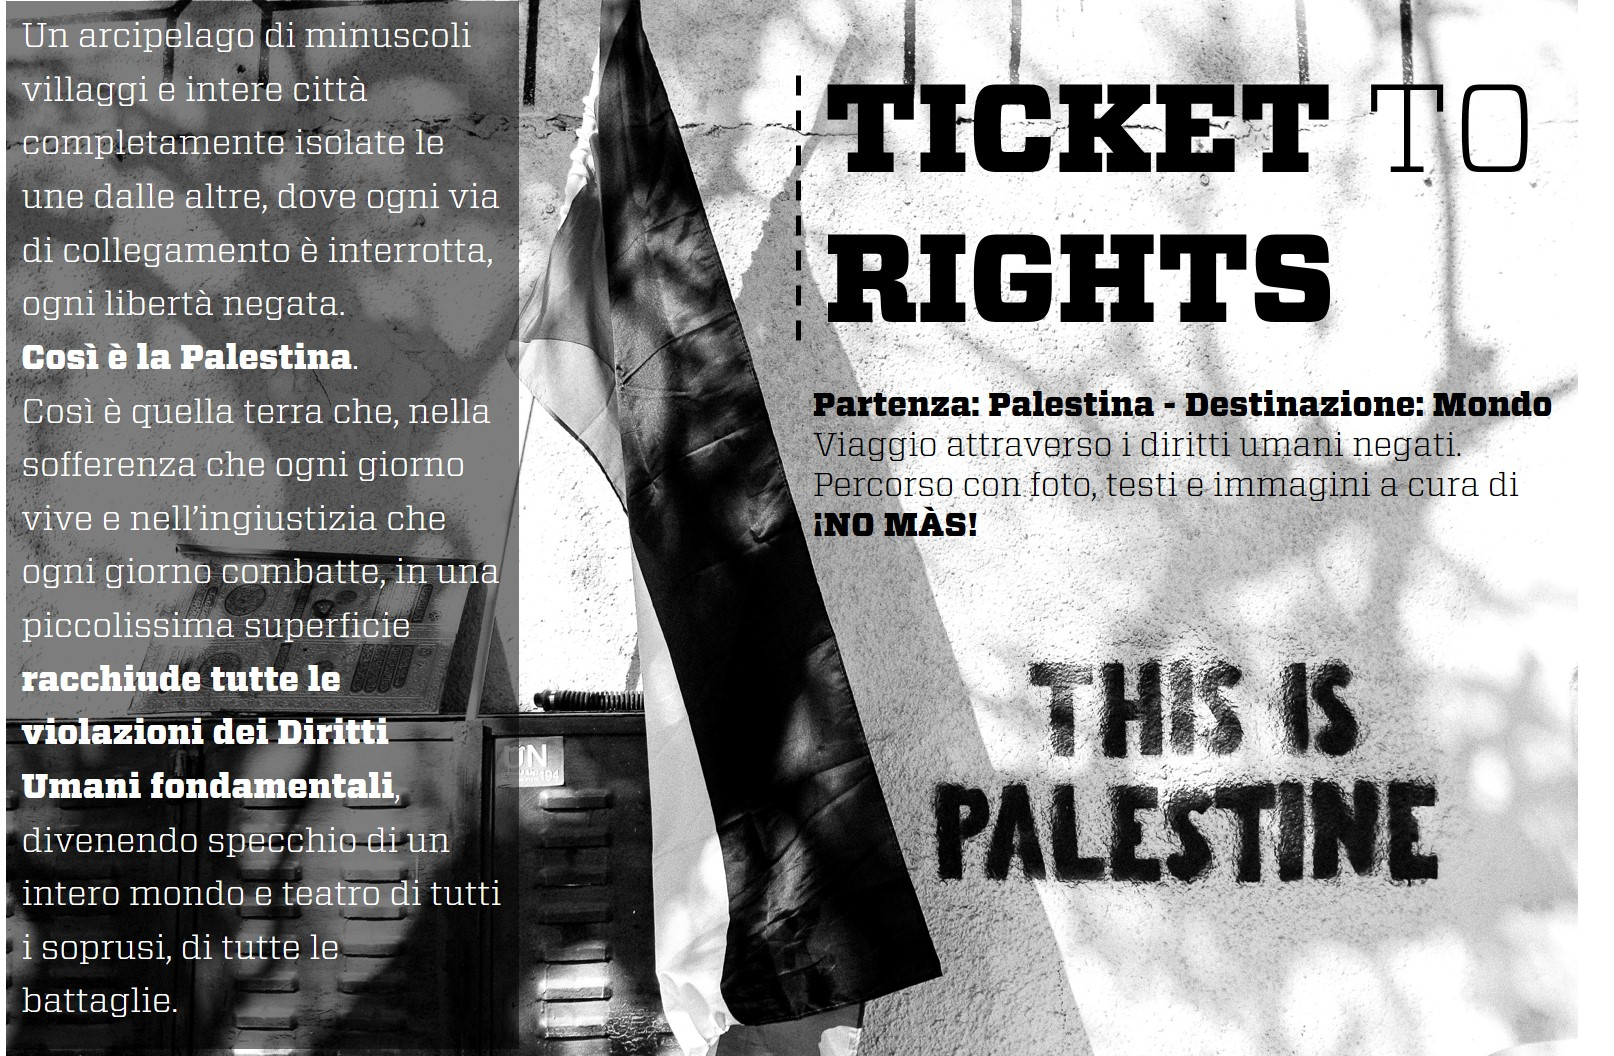 ticket_to_rights_foto_palestina